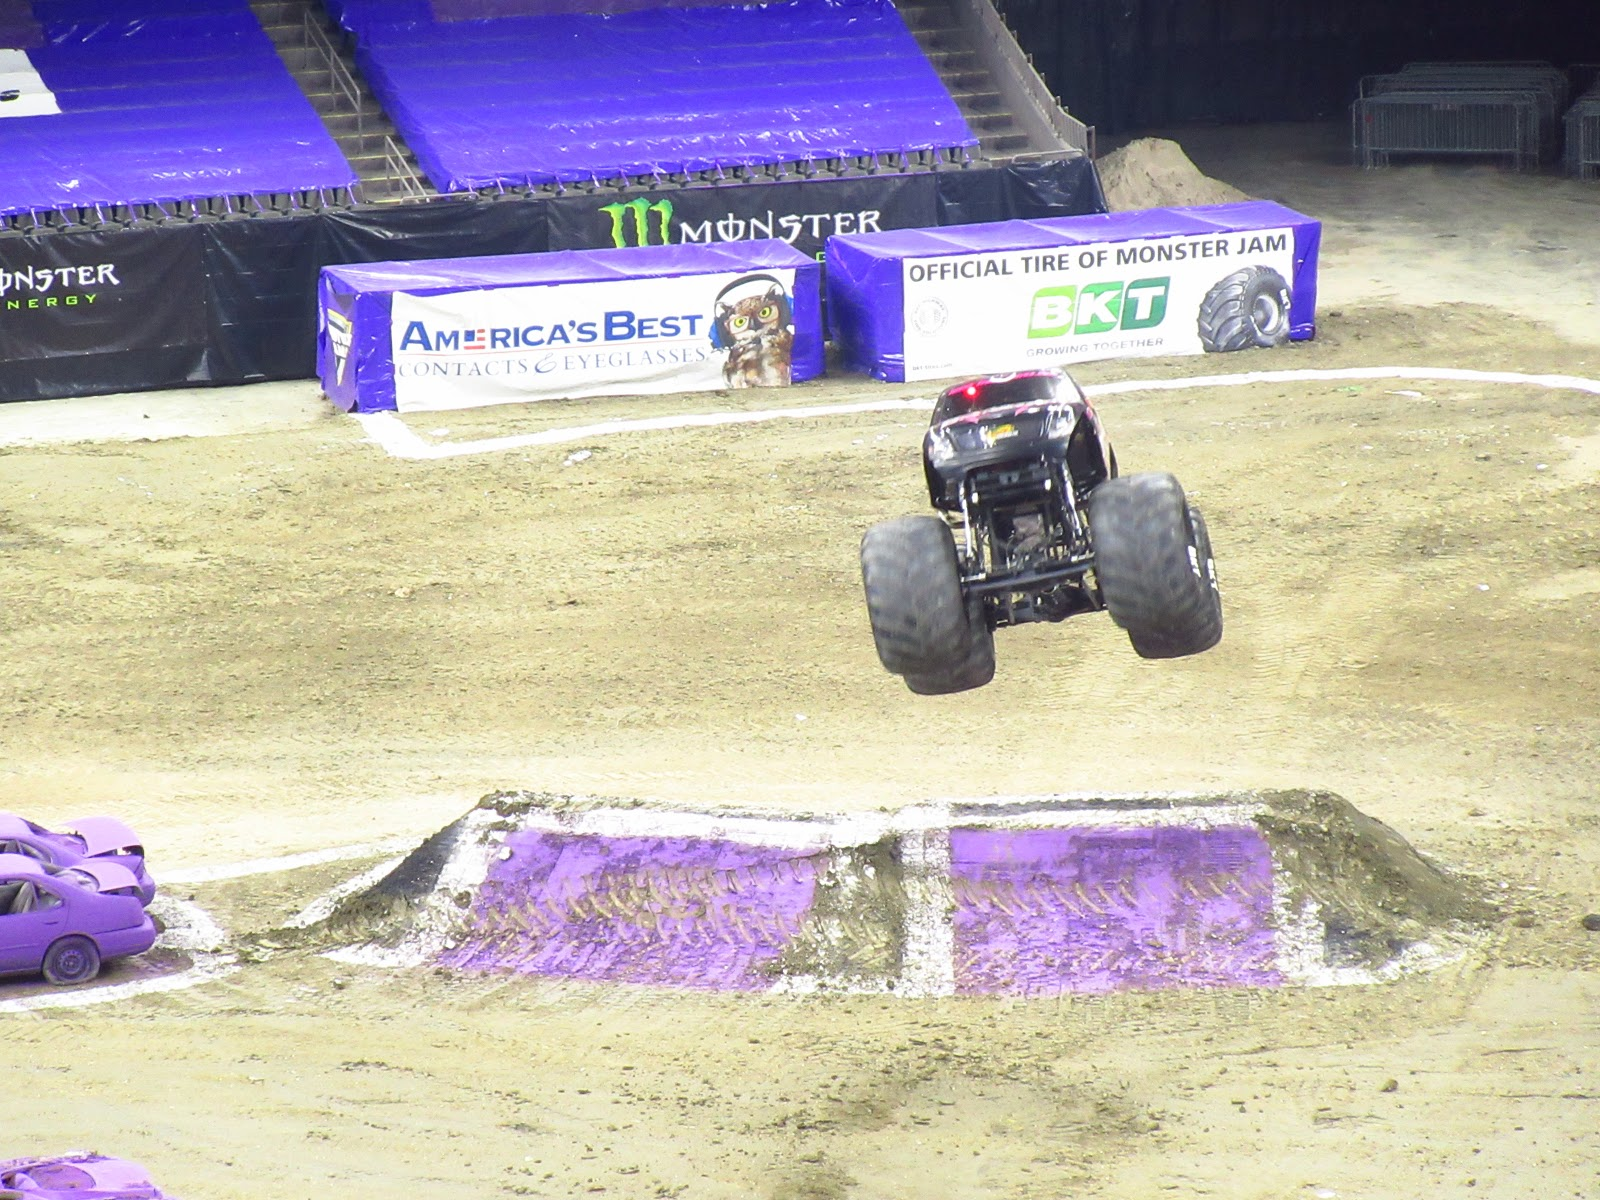 Greetings from Guatemala: New Orleans Monster Jam 2018